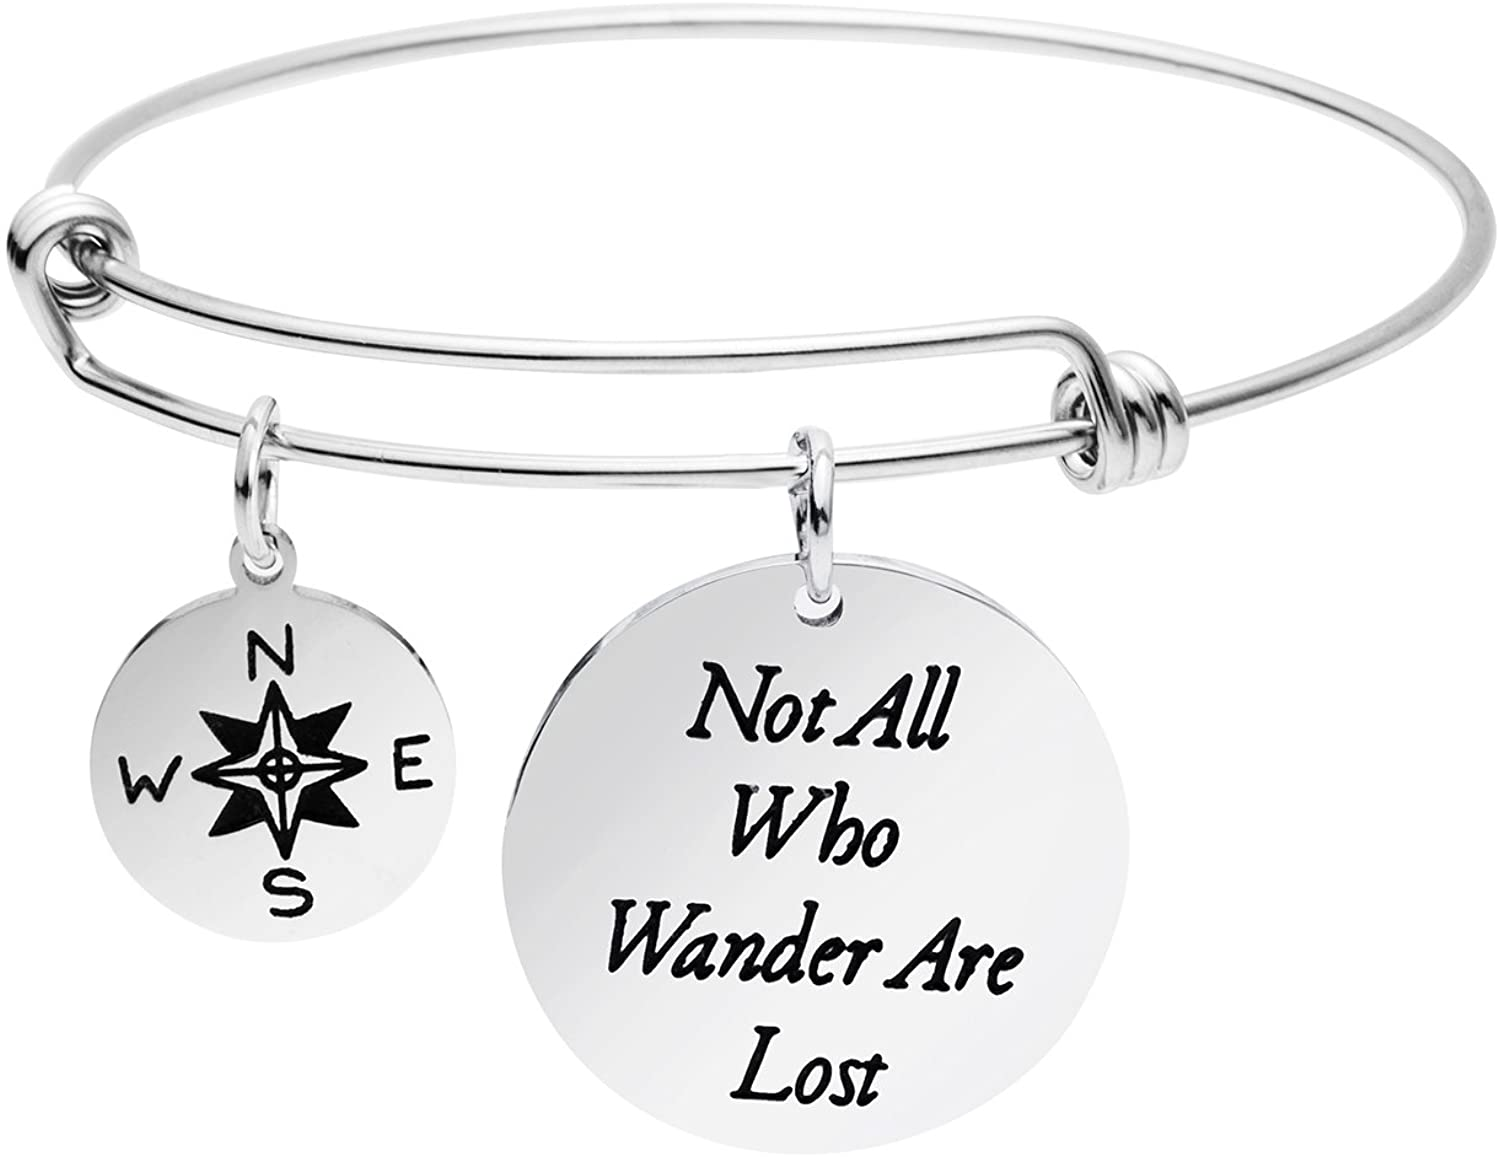 Yiyangjewelry Inspirational Bracelet Gifts for Friends Friendship Bracelets Inspirational Bangle Engrave Encouragement Message